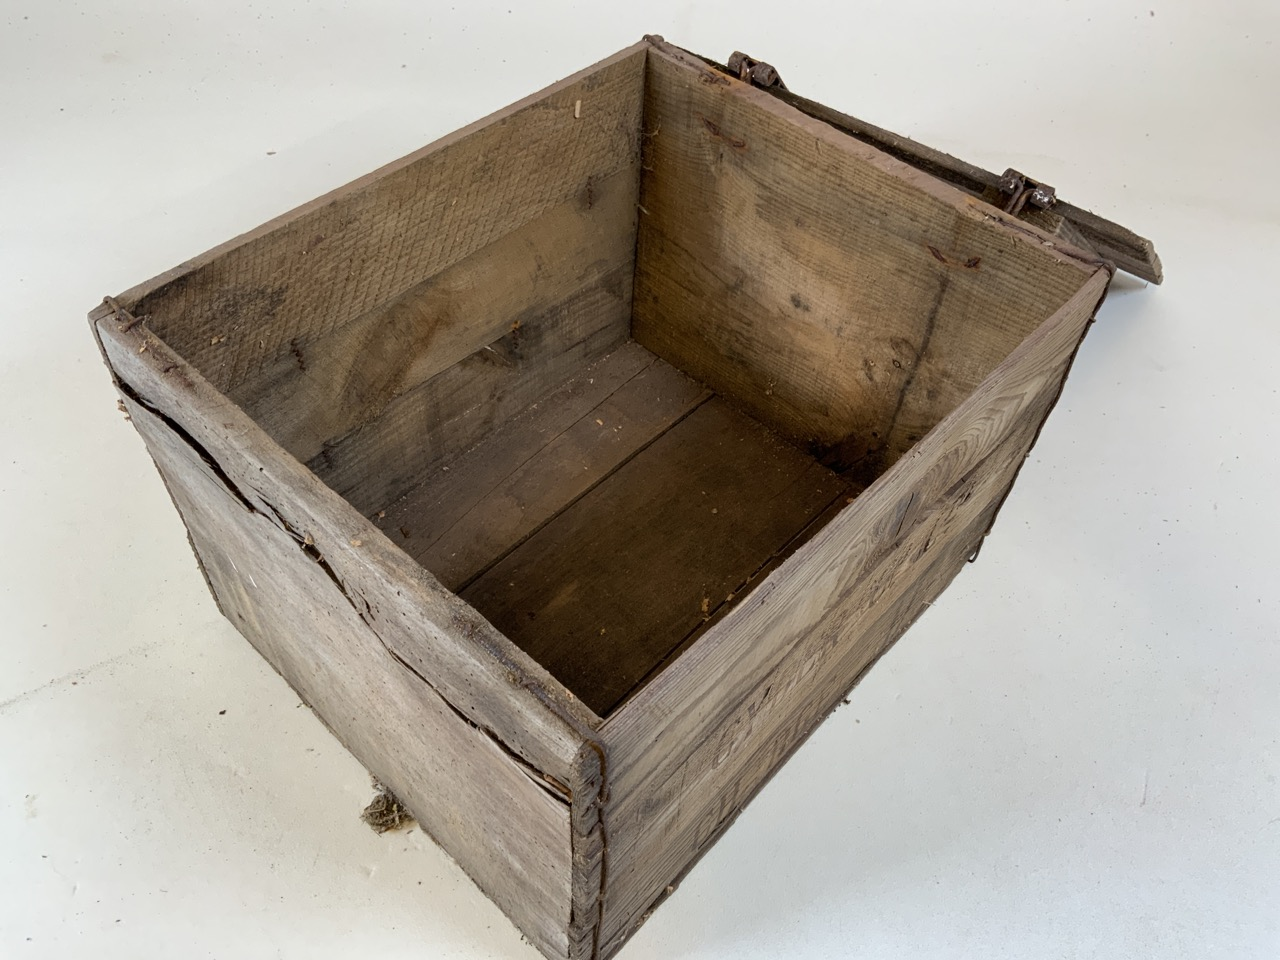 Four Whiteways Cyder Co ltd Cider boxes. From Whiteways, Hele, Exeter. W:32cm x D:39cm x H:28cm - Image 5 of 5